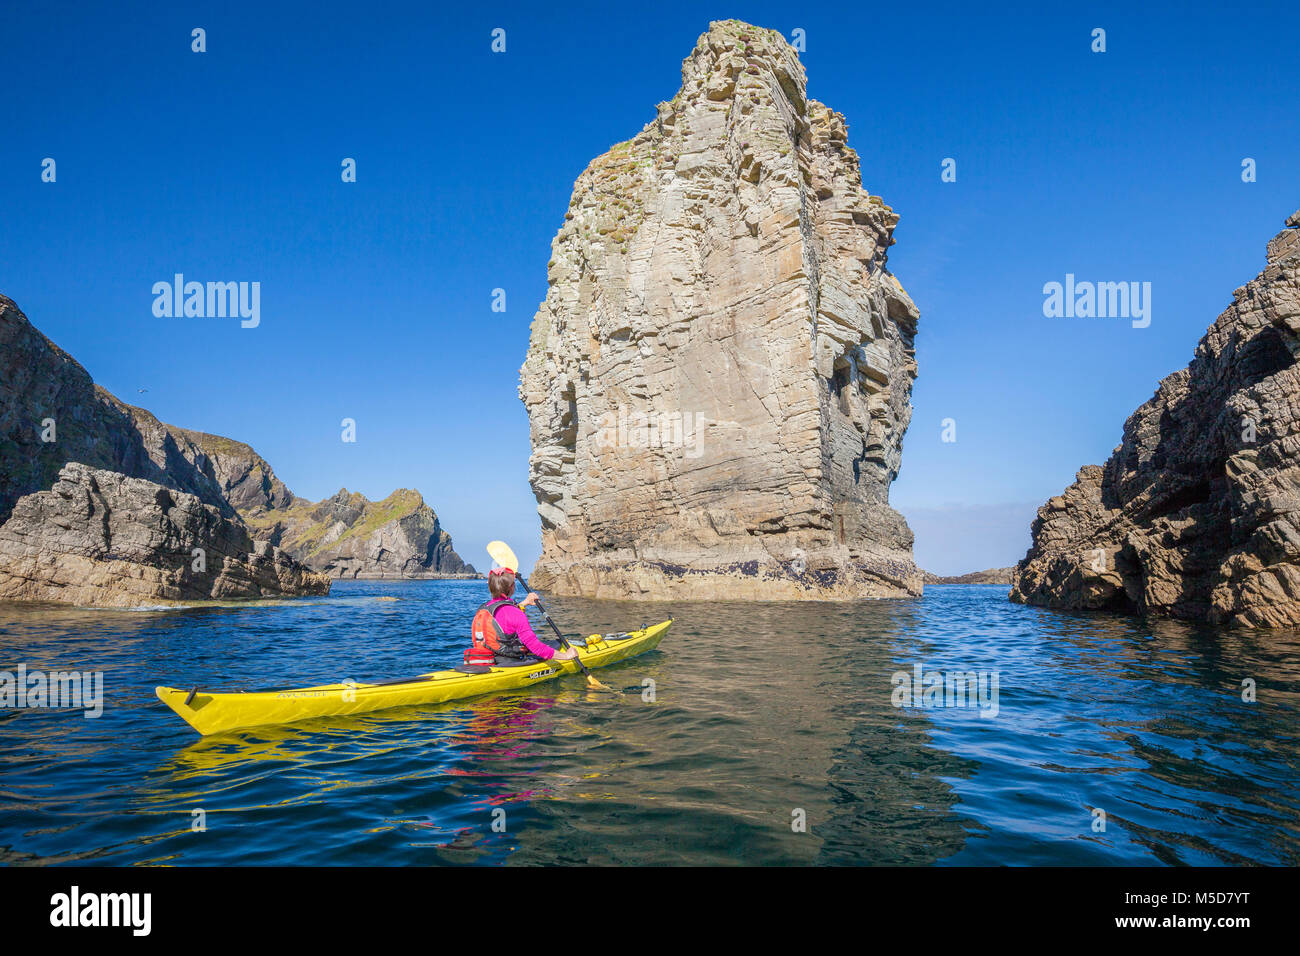 Sea kayaking past a massive stack near Port, Glencolmcille, County Donegal, Ireland. - Stock Image